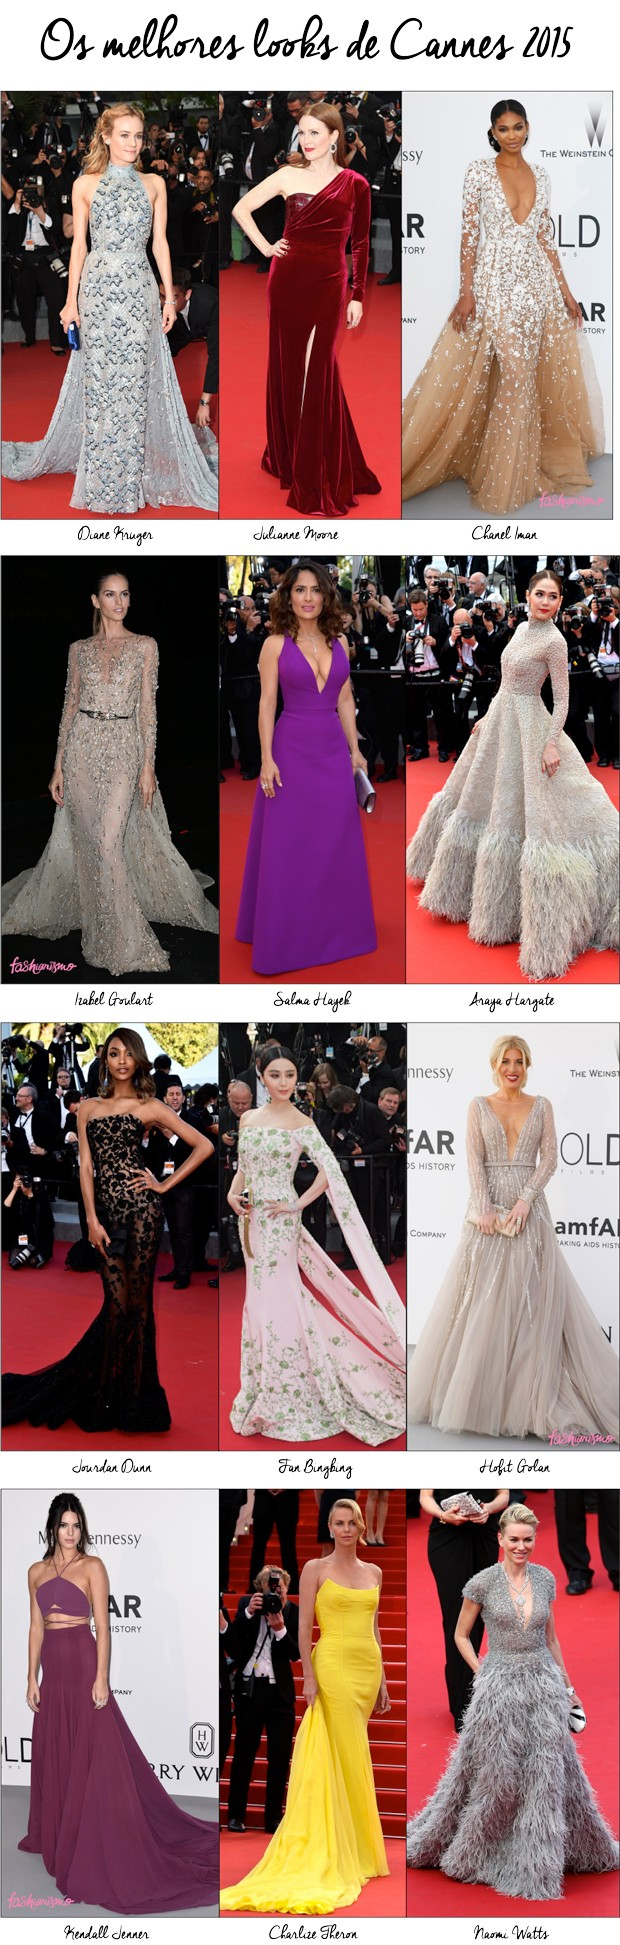 AS MAIS BEM VESTIDAS DE CANNES 2015 | FASHIONISMO